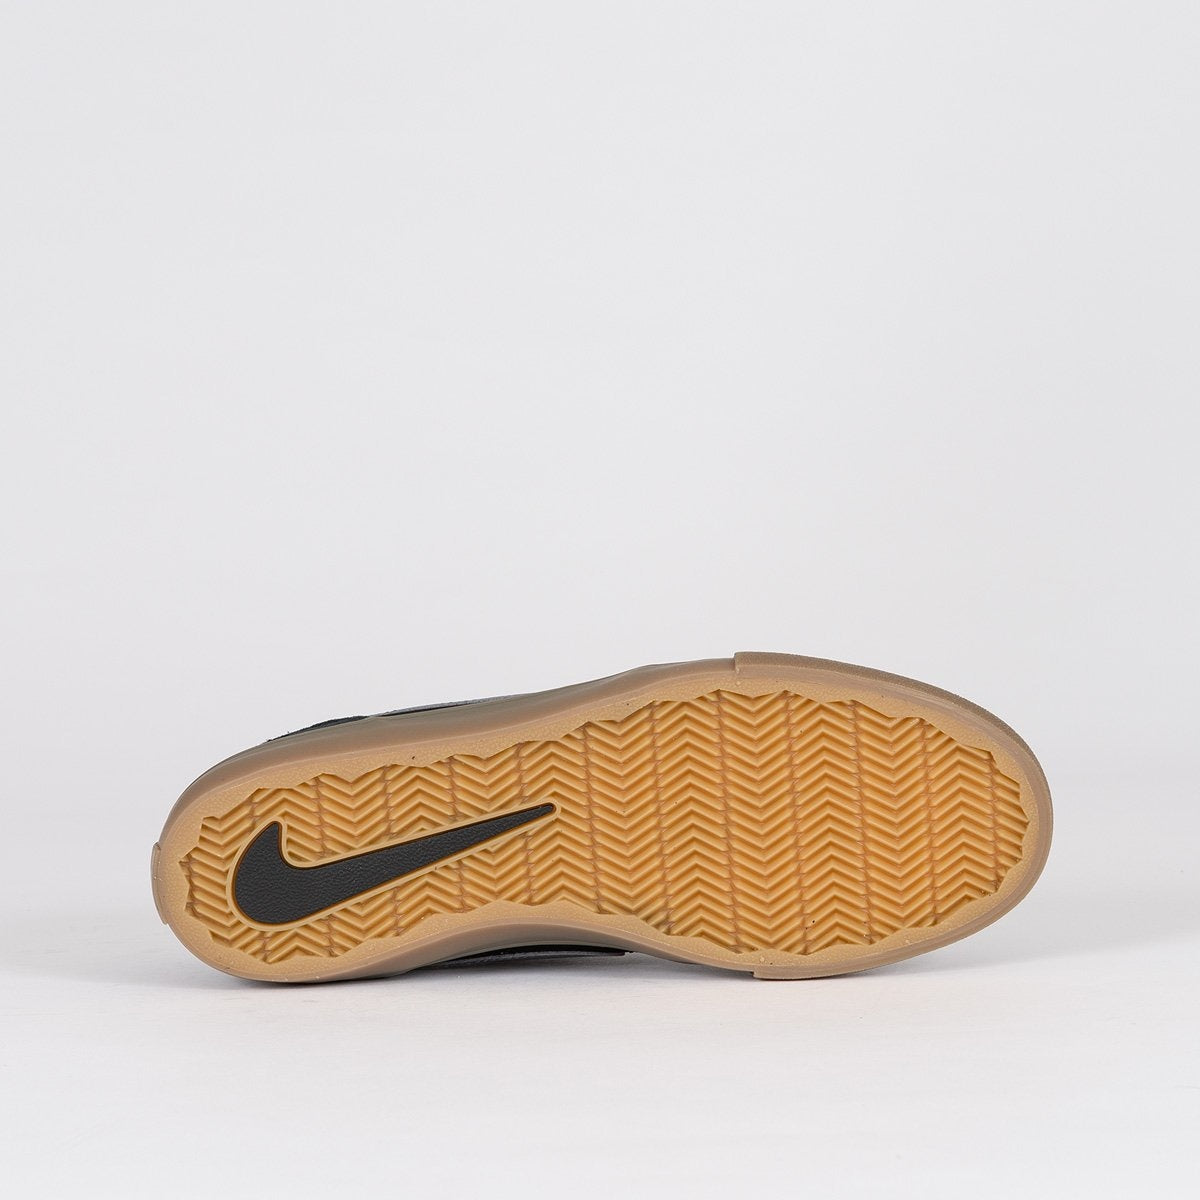 Nike SB Portmore II Solar Black/Dark Grey/Gum Light Brown - Unisex L - Footwear